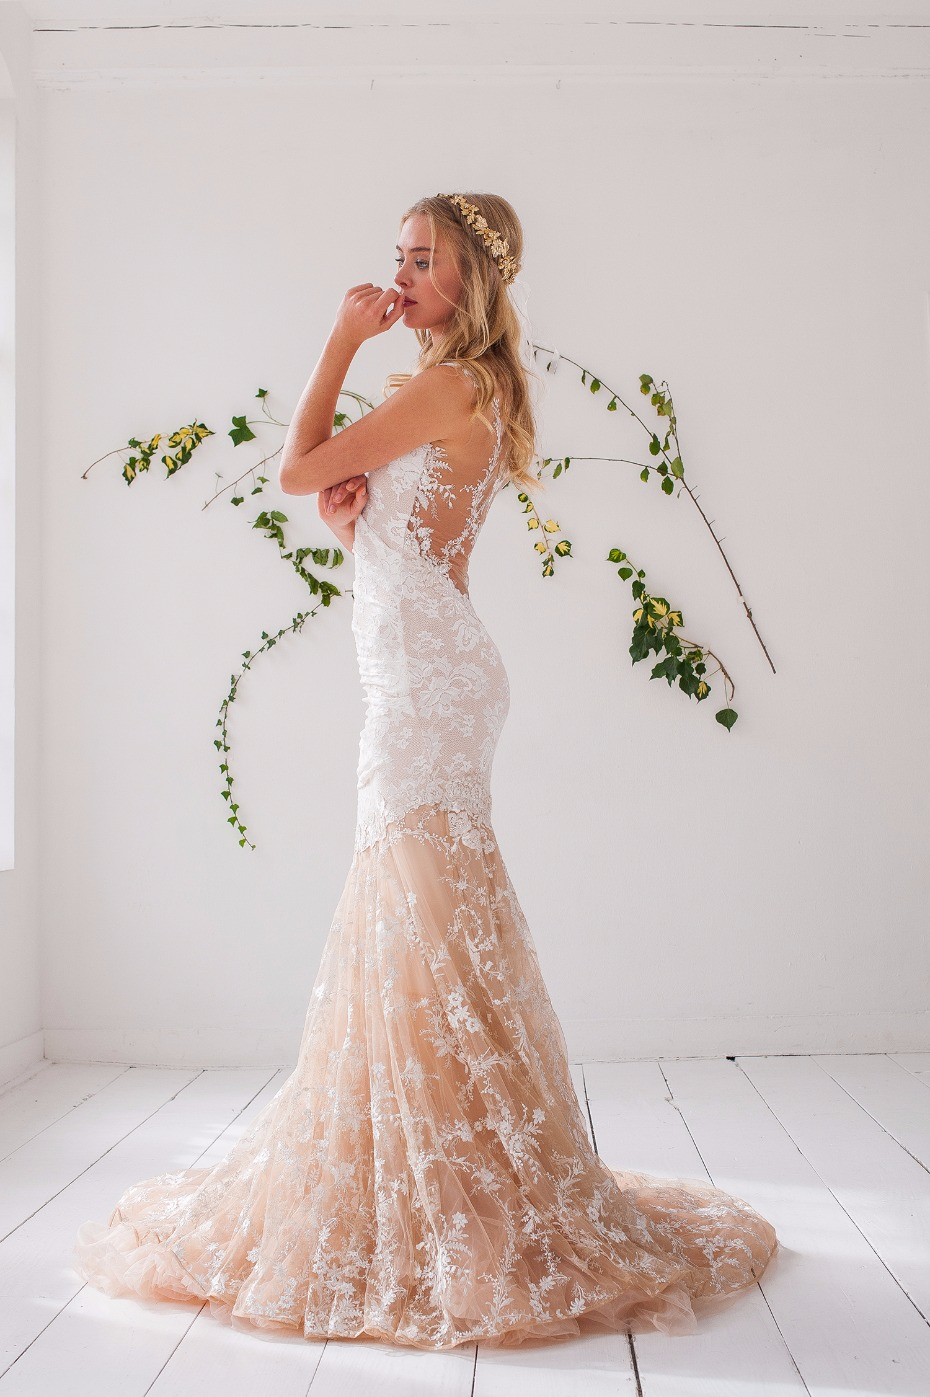 Two toned lace gown from Olvi's